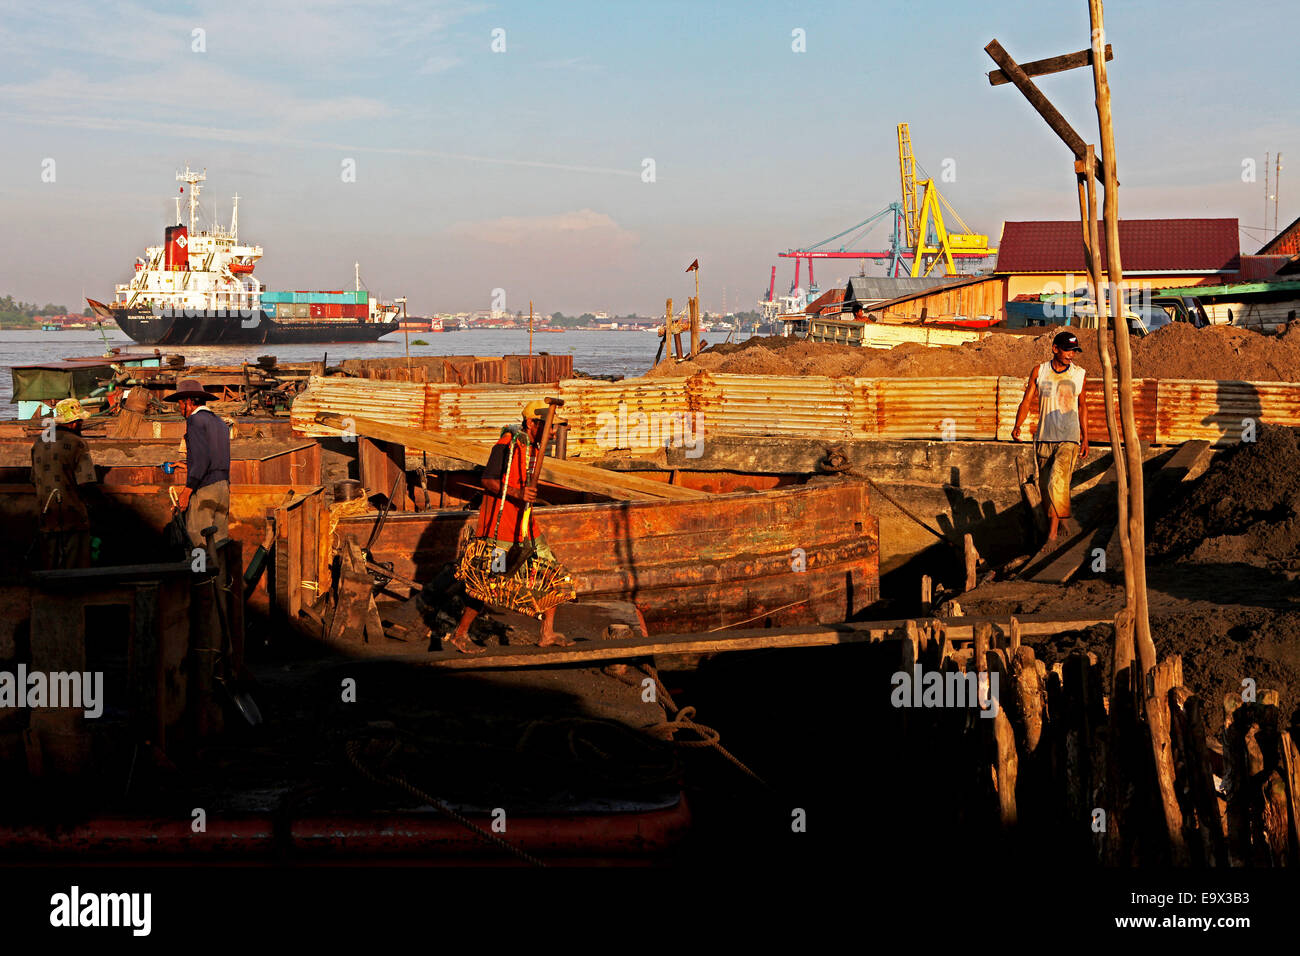 Workers uploading sands from a barge while a cargo ship passes through the Musi River in South Sumatra, Indonesia. - Stock Image